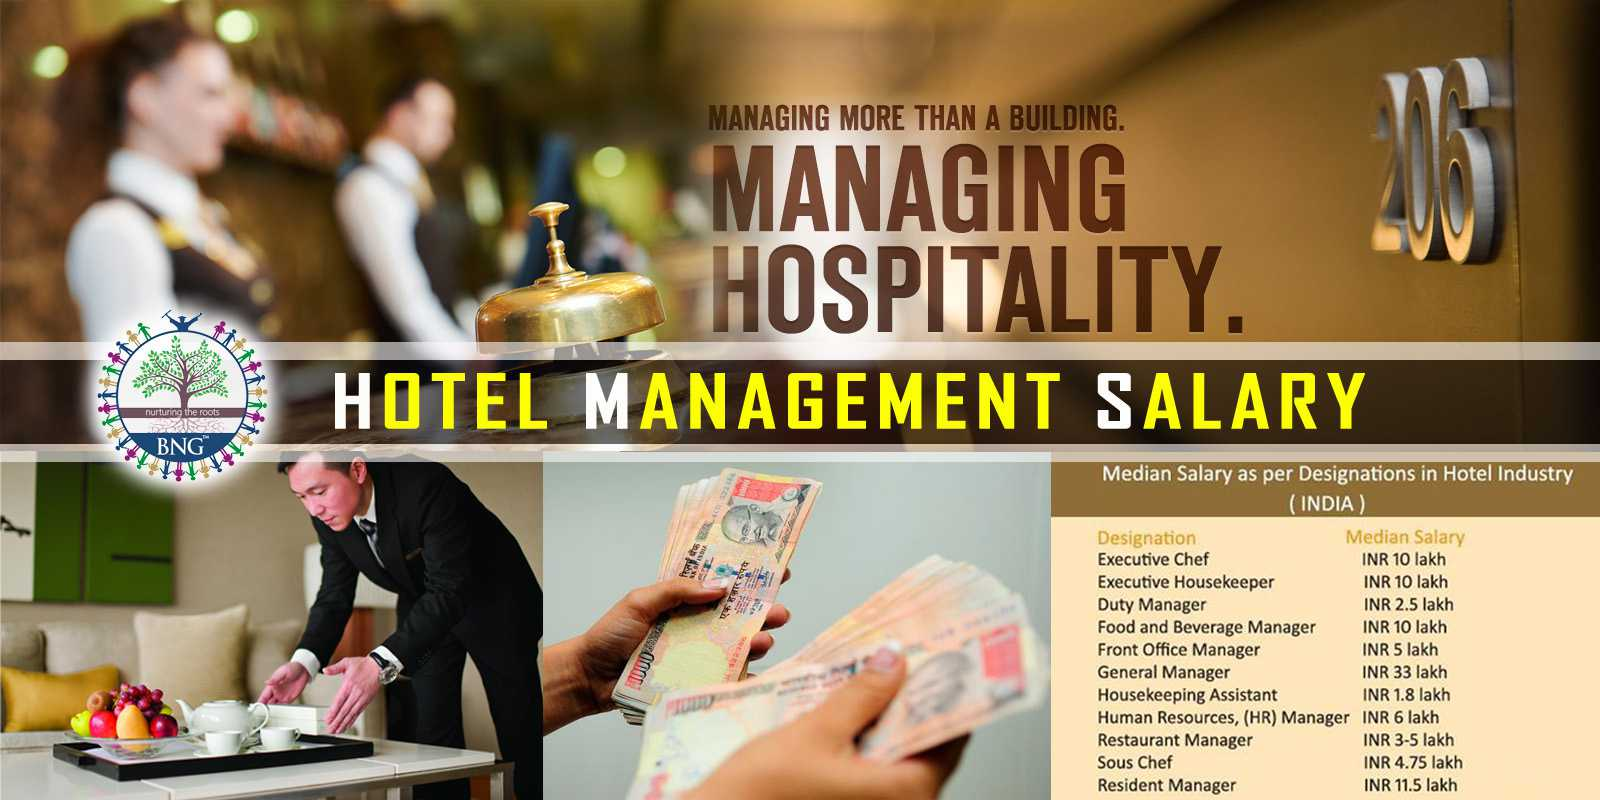 Hotel Management Salary » BNG Hotel Management Kolkata